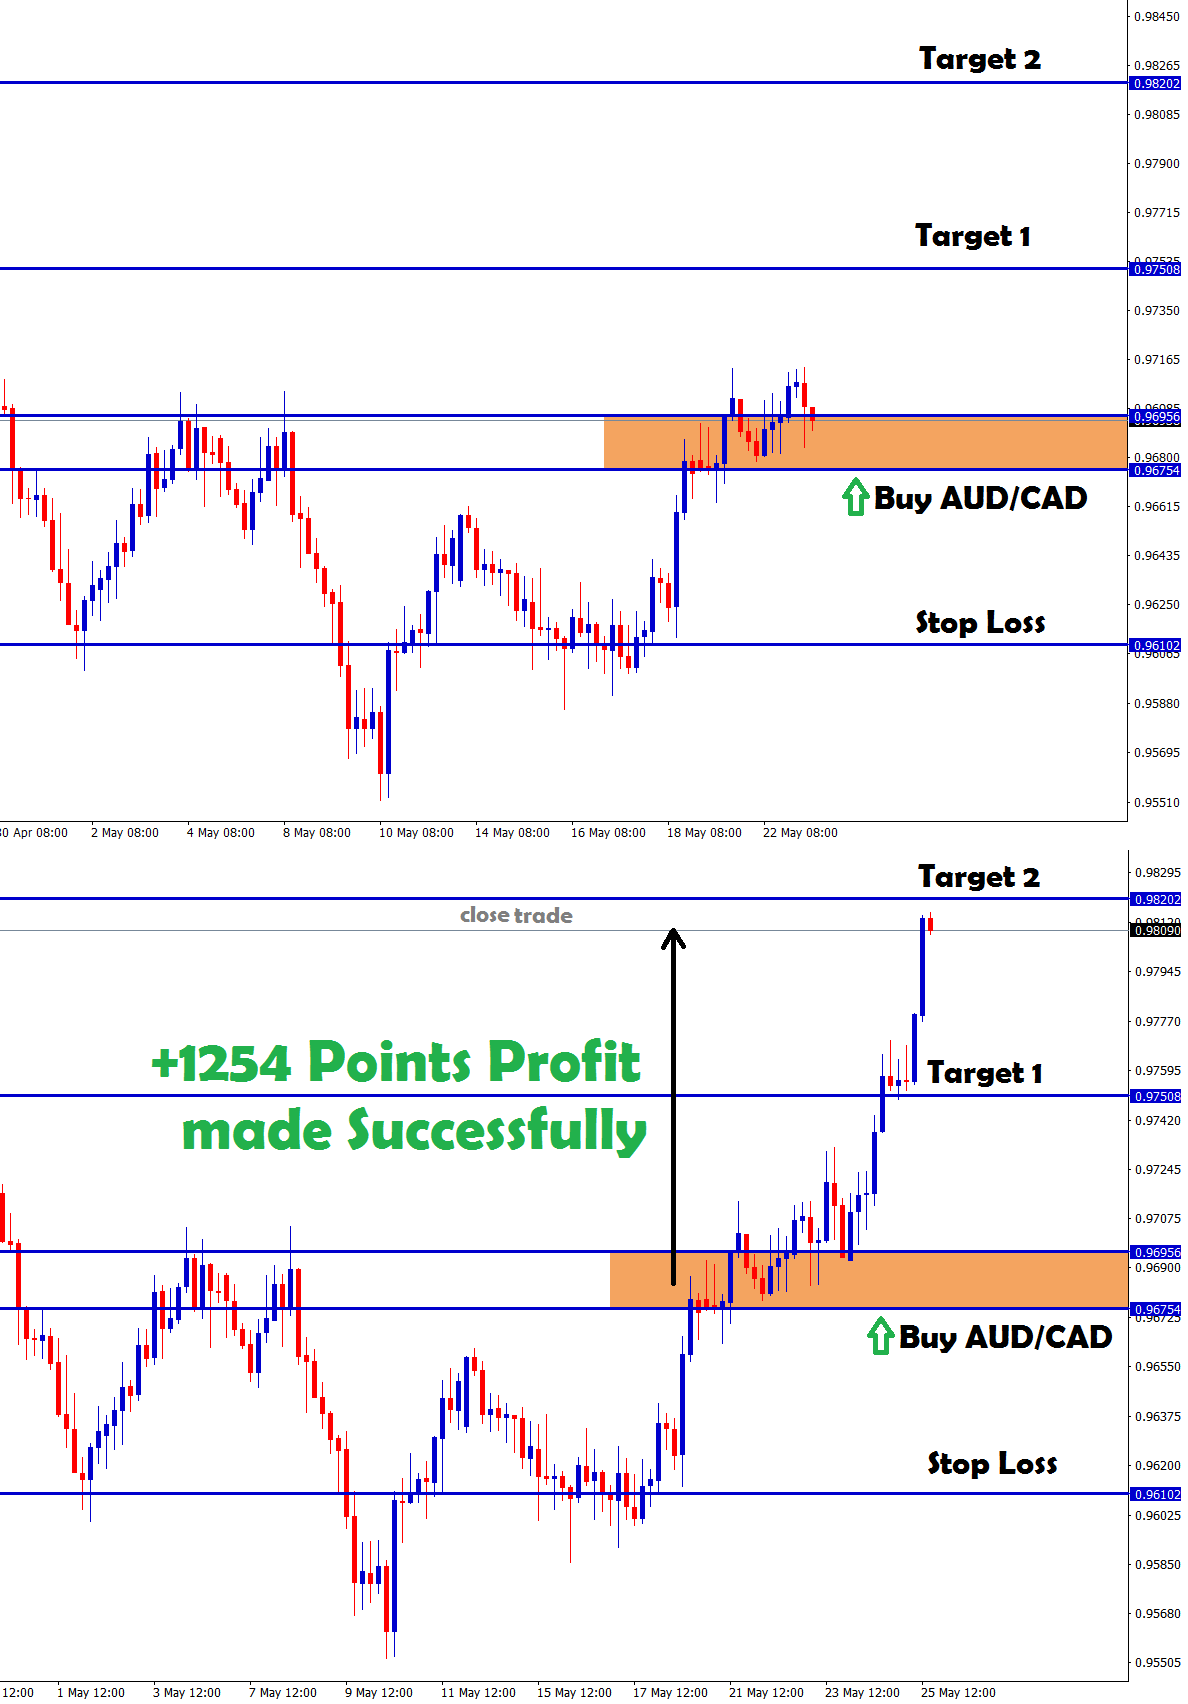 aud cad buy signal hits target 2 and starts to fall down